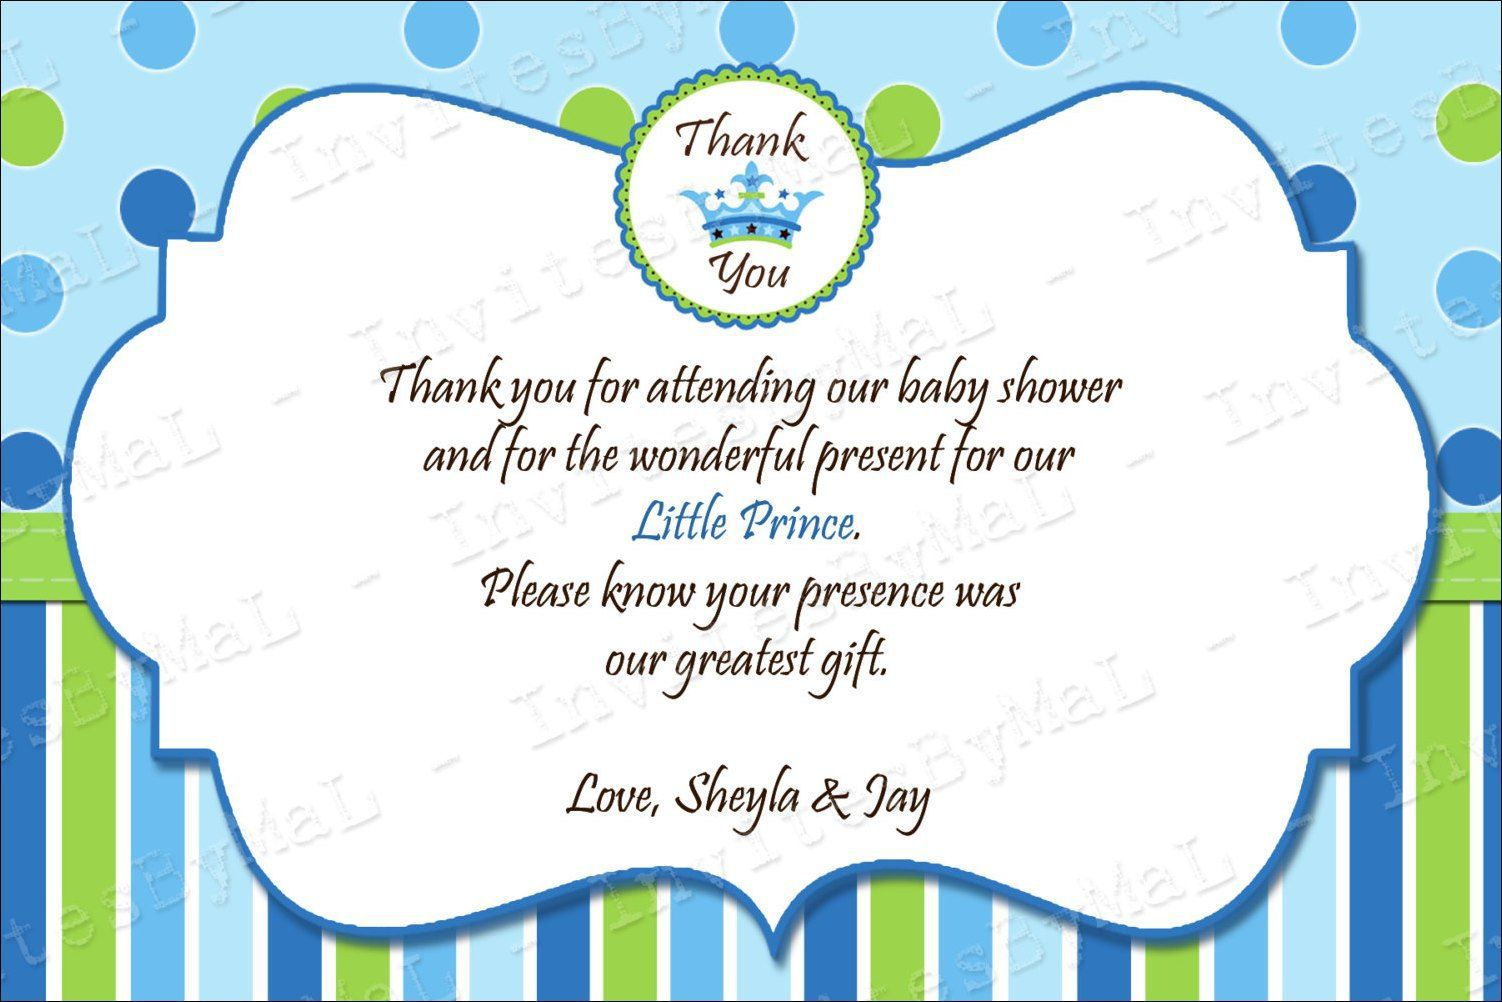 007 Remarkable Thank You Card Wording Baby Shower Gift Photo  For Multiple GroupFull